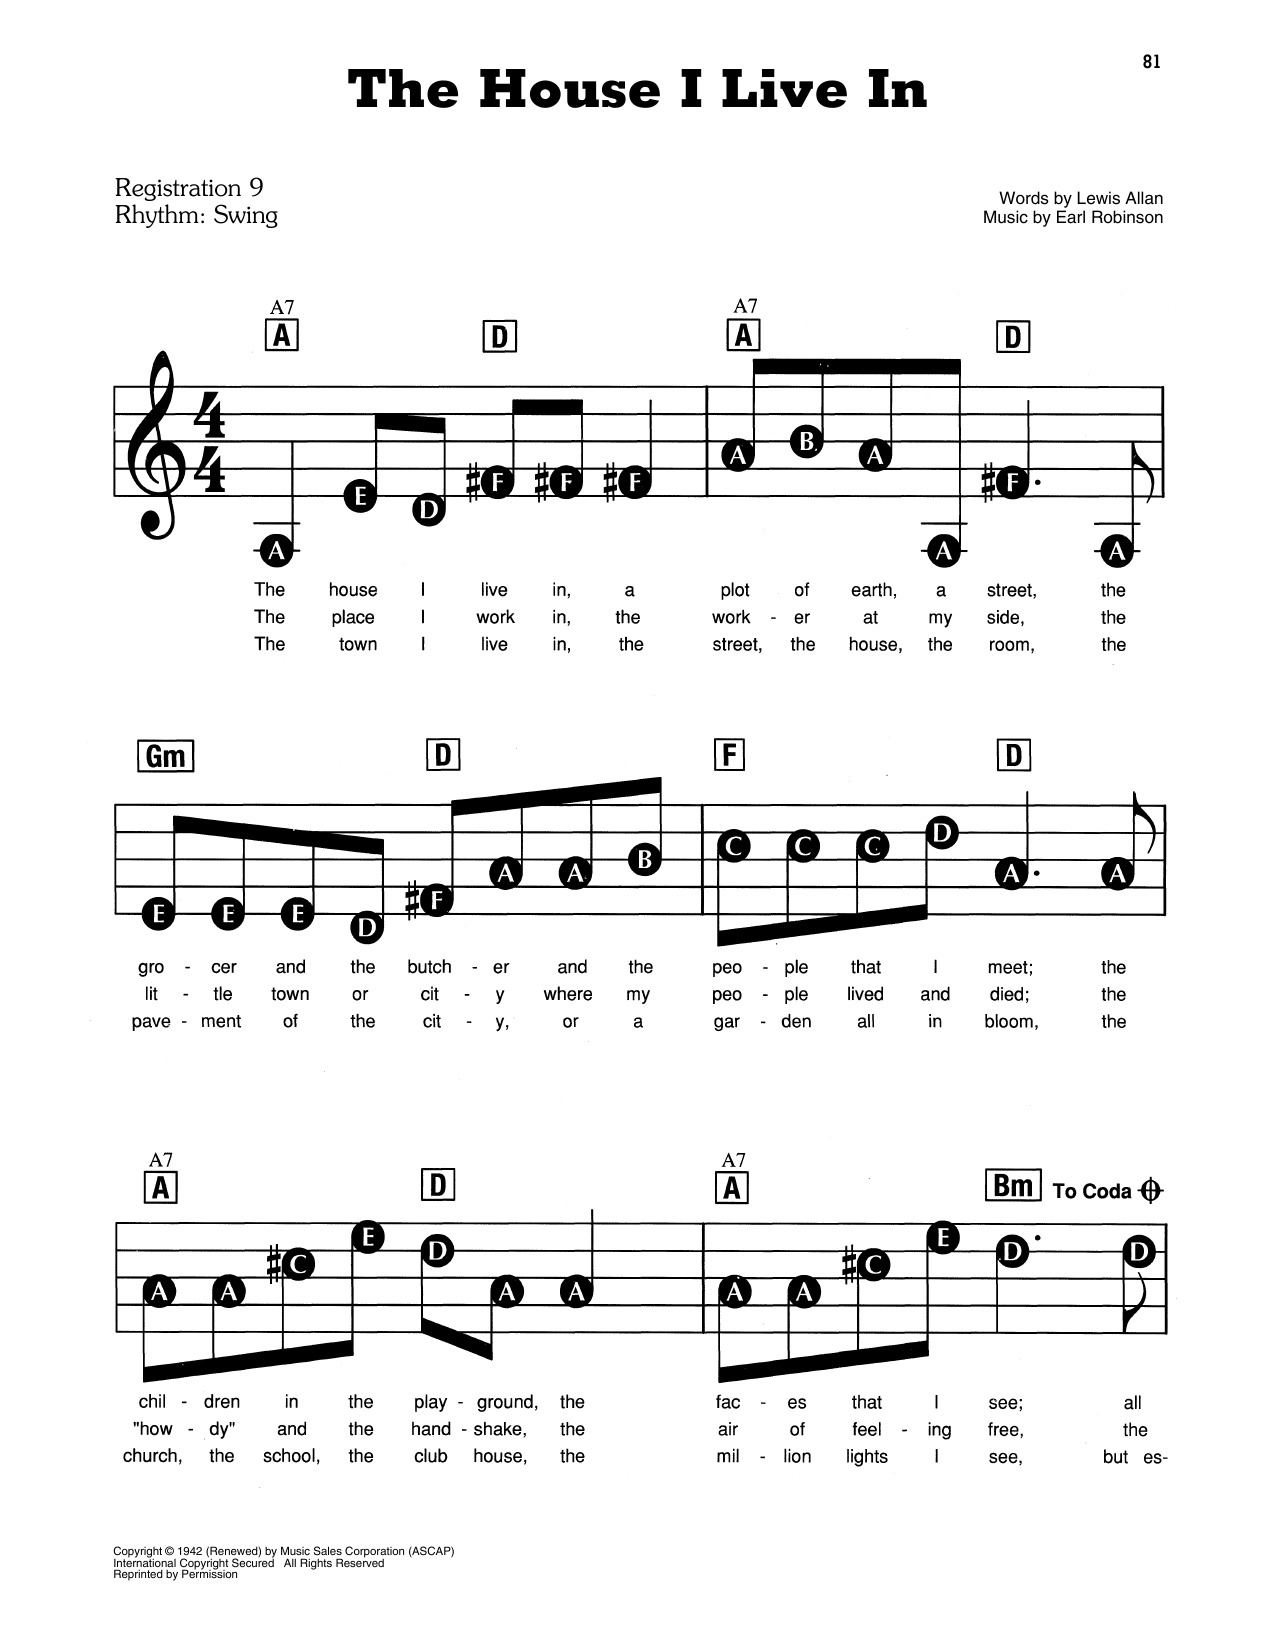 Frank Sinatra The House I Live In Sheet Music Download Pdf Score 156670 Download where do i live? frank sinatra the house i live in